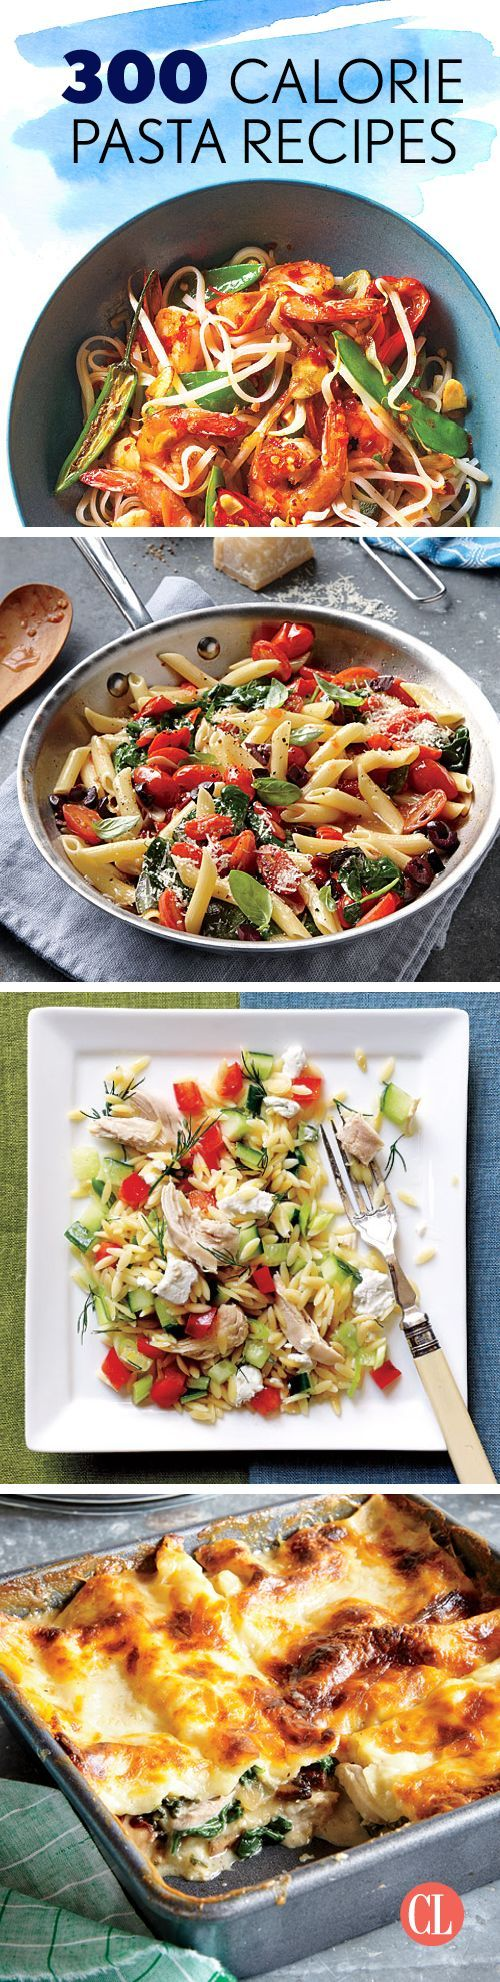 Even when cooking at home, pasta recipes can head toward calorie-heavy territory quite easily. Between the noodles, sauces, and any toppings you might sprinkle on, your plate could potentially tip the scale over 500 calories. These low-calorie pasta recipes help you portion control and keep your meal manageable. | Cooking Light #500CALORIEDIETS